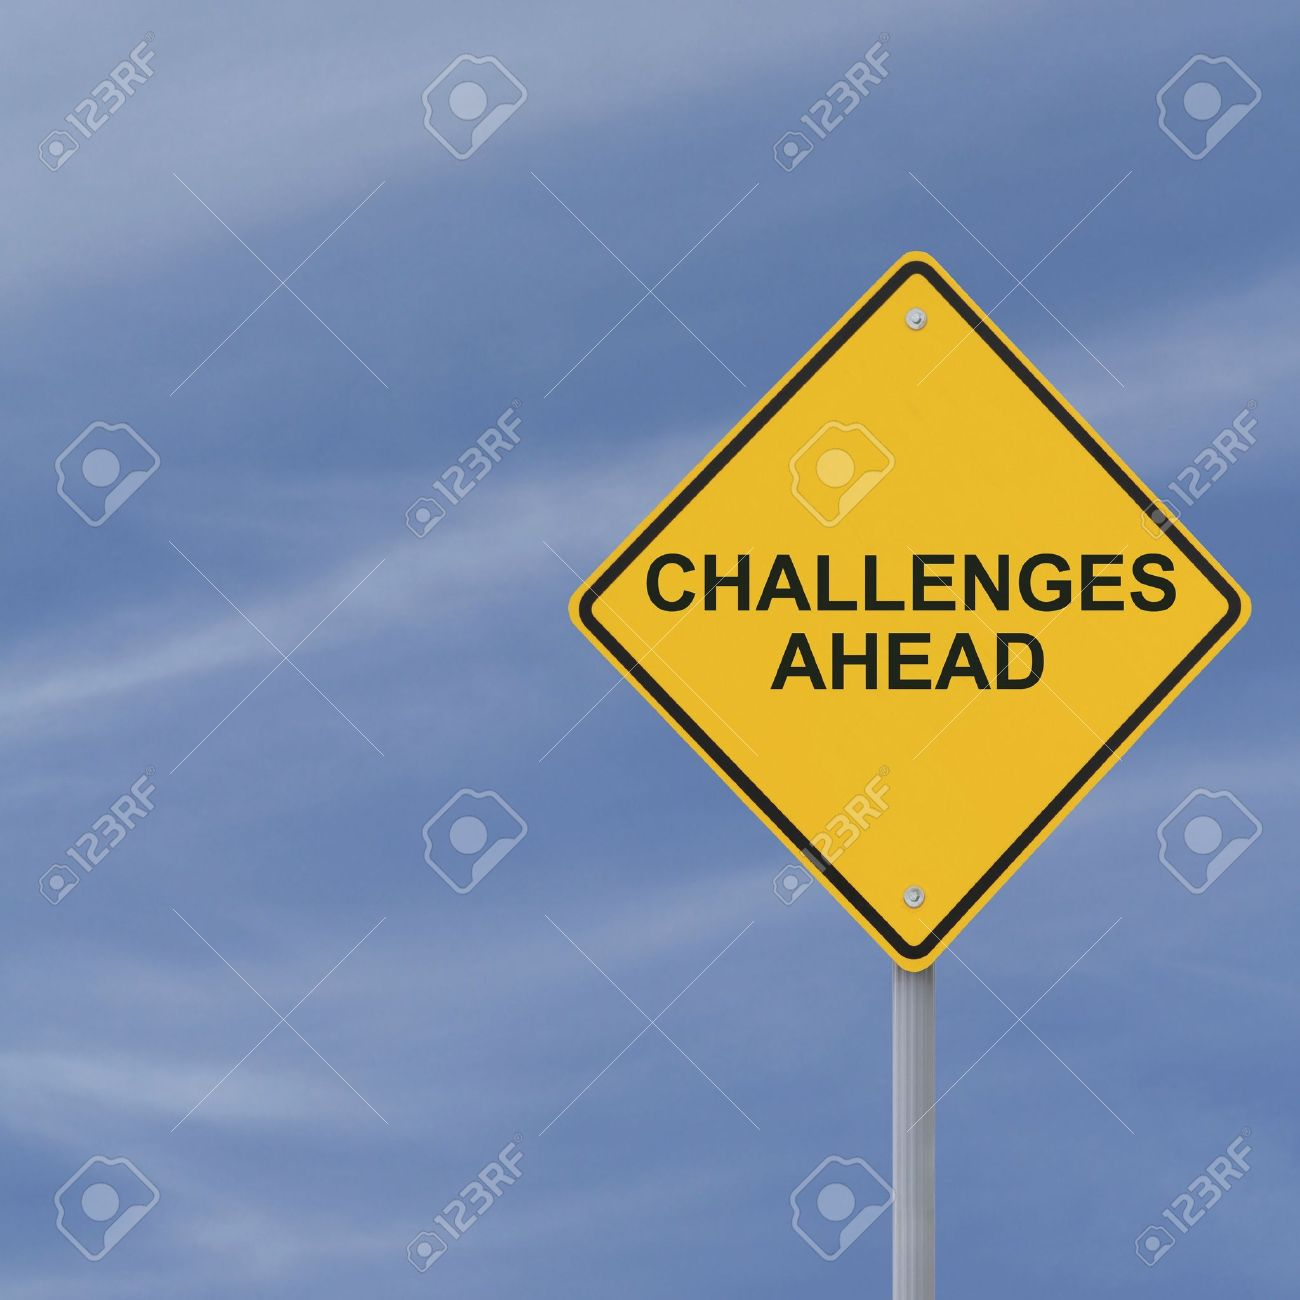 �Challenges Ahead� warning sign Stock Photo - 13322144